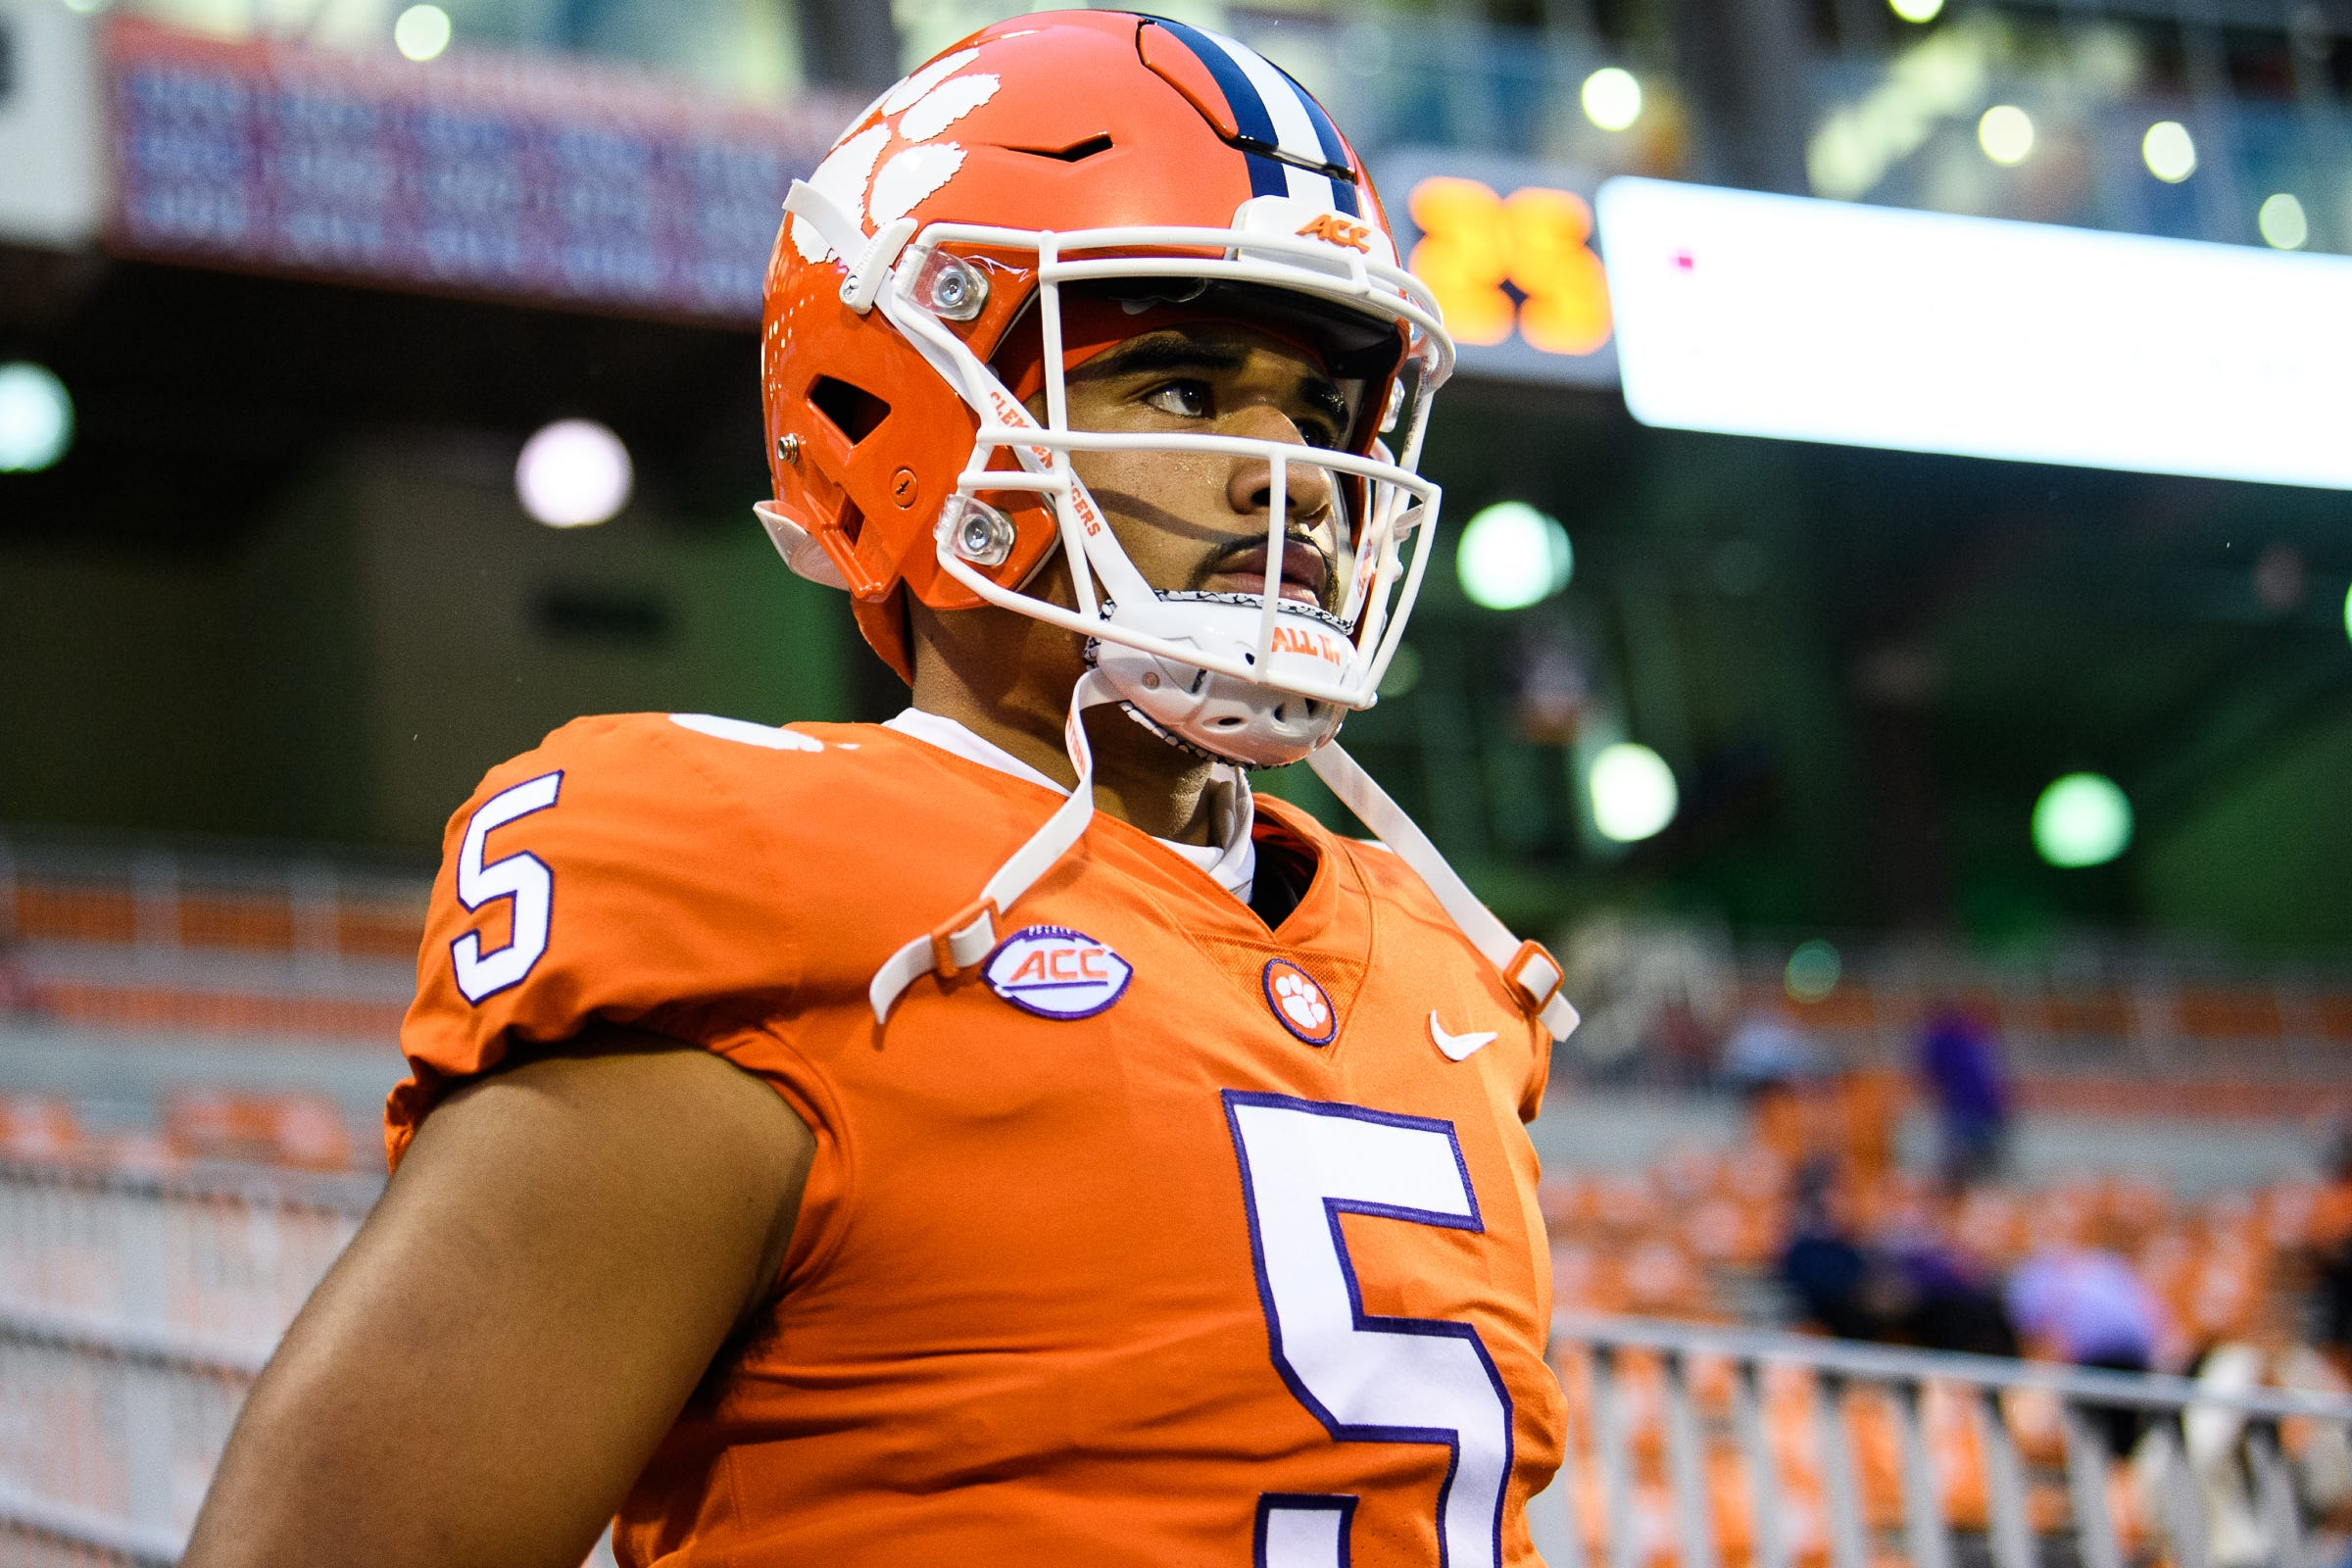 Who is true freshman QB expected to step in for Clemson with Trevor Lawrence out due to COVID-19?